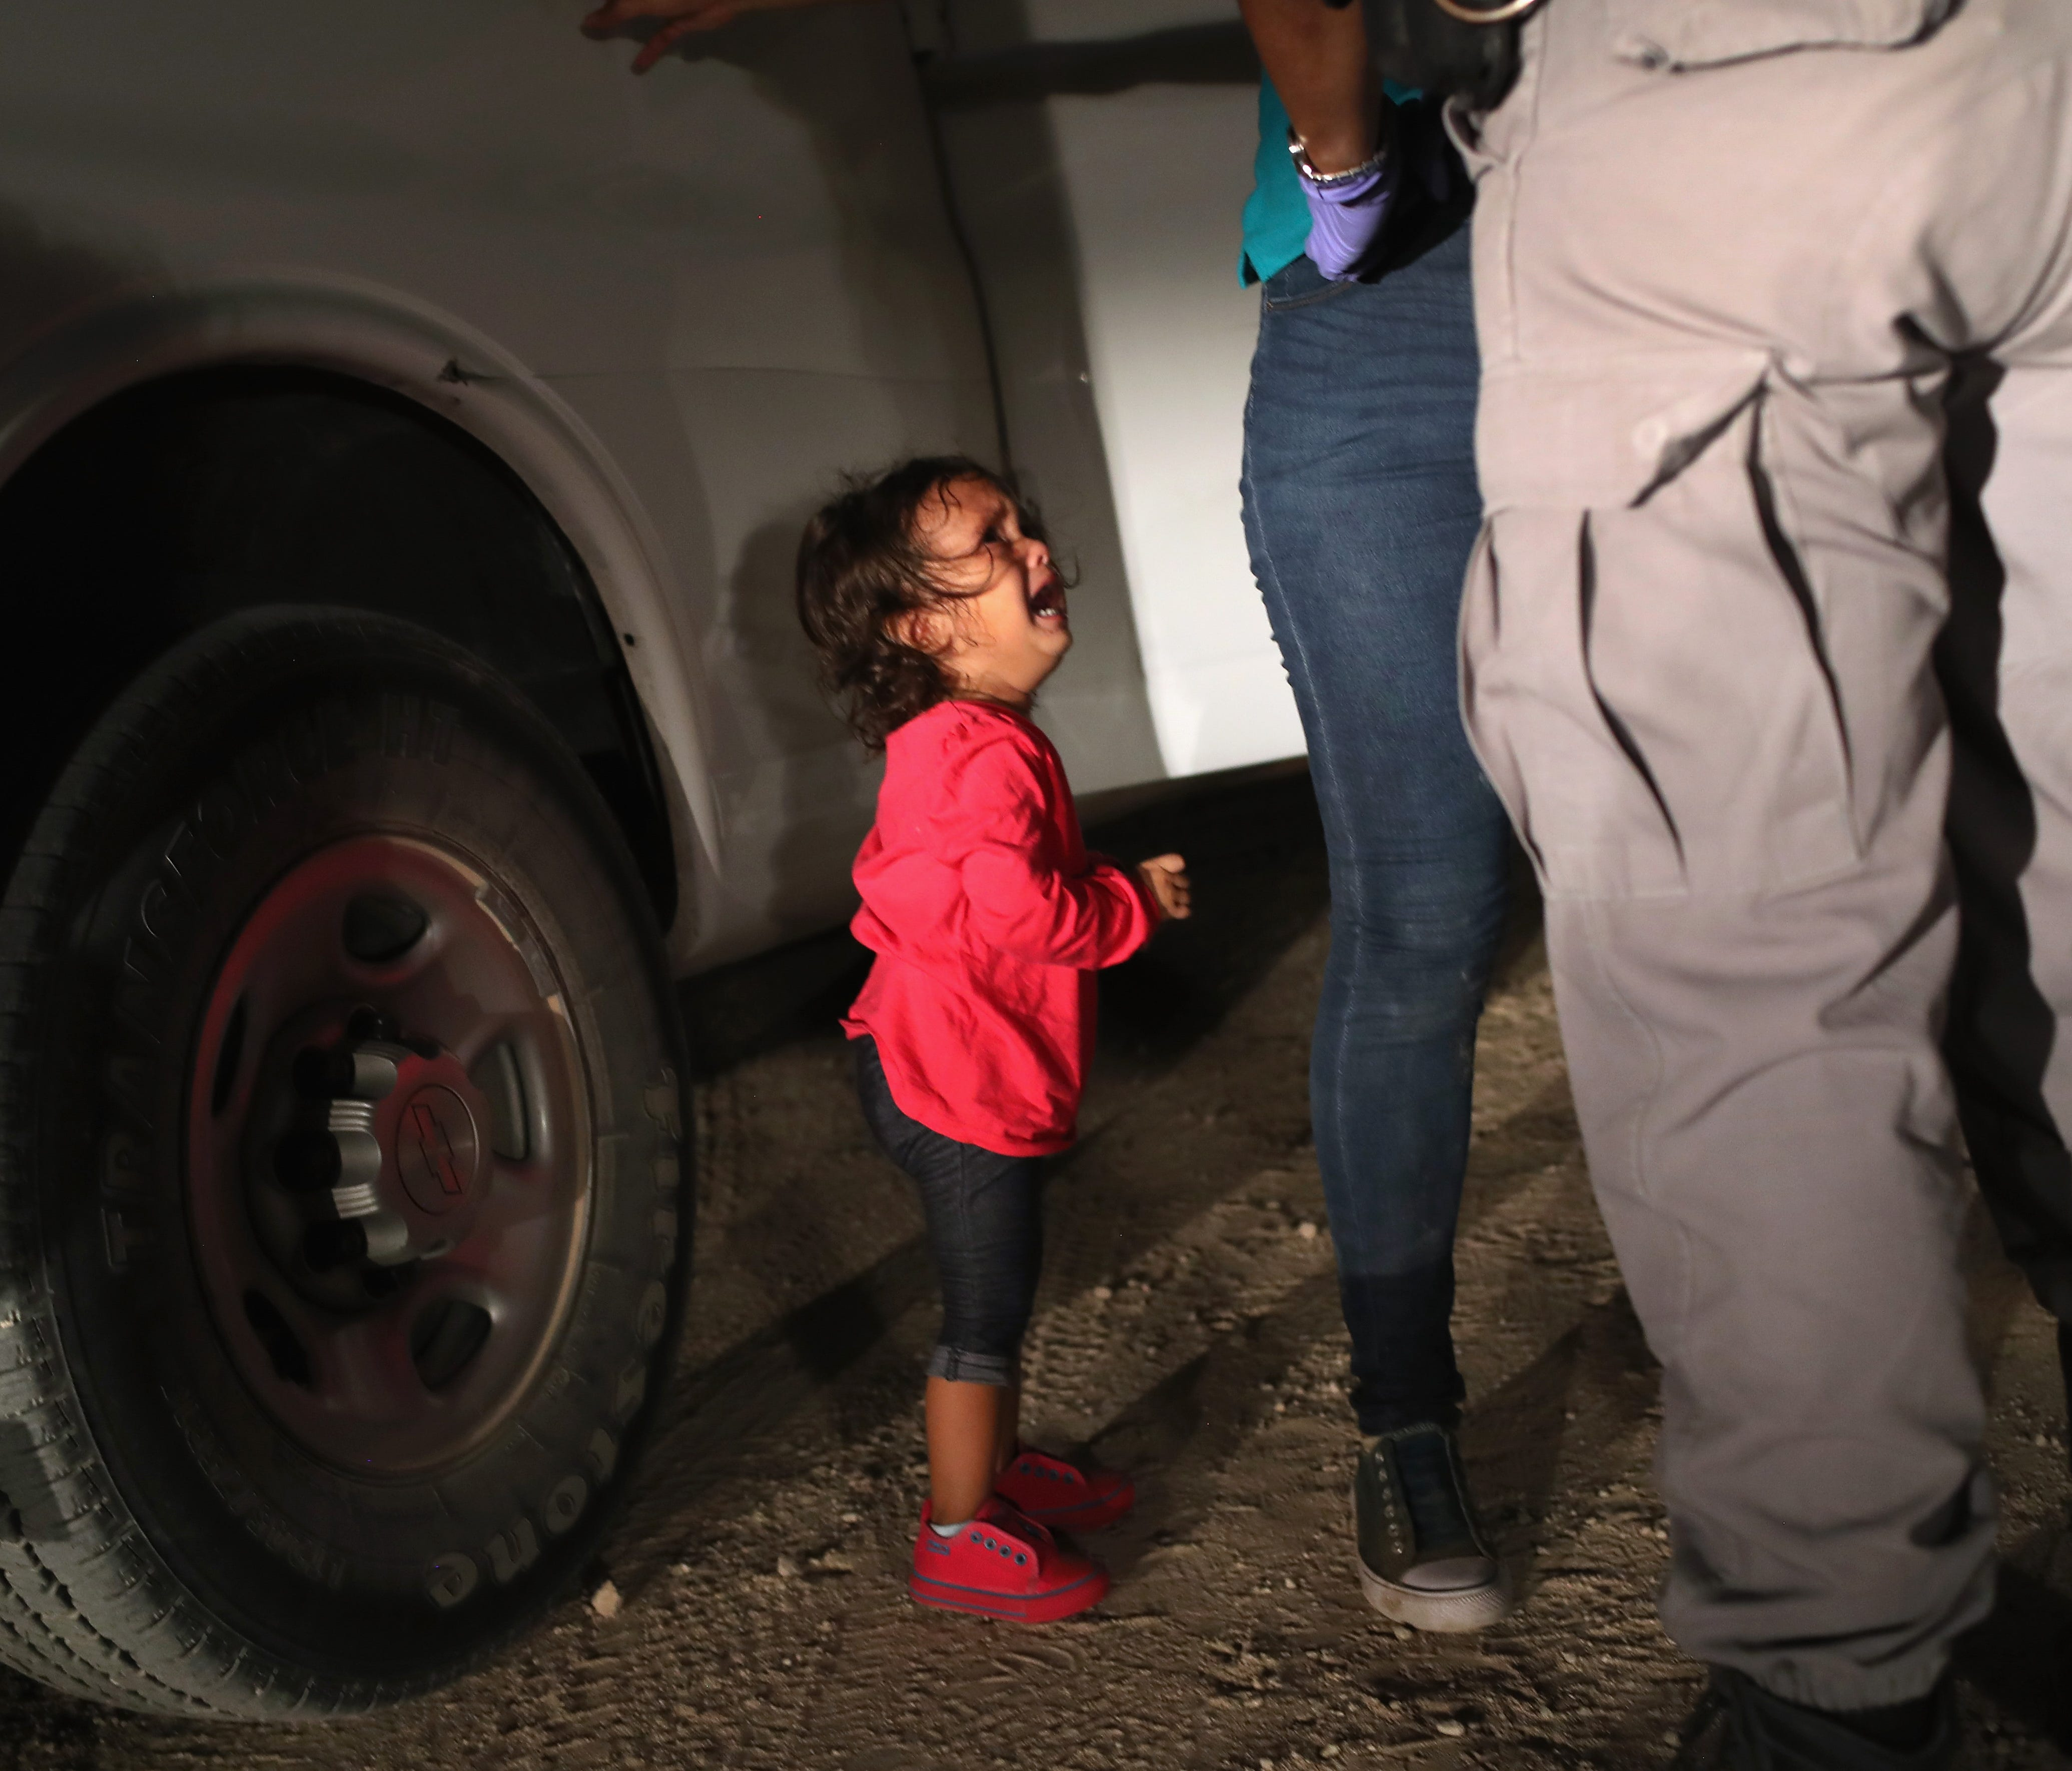 A two-year-old Honduran asylum seeker cries as her mother is searched and detained near the U.S.-Mexico border on June 12, 2018 in McAllen, Texas. The asylum seekers had rafted across the Rio Grande from Mexico and were detained by U.S. Border Patrol